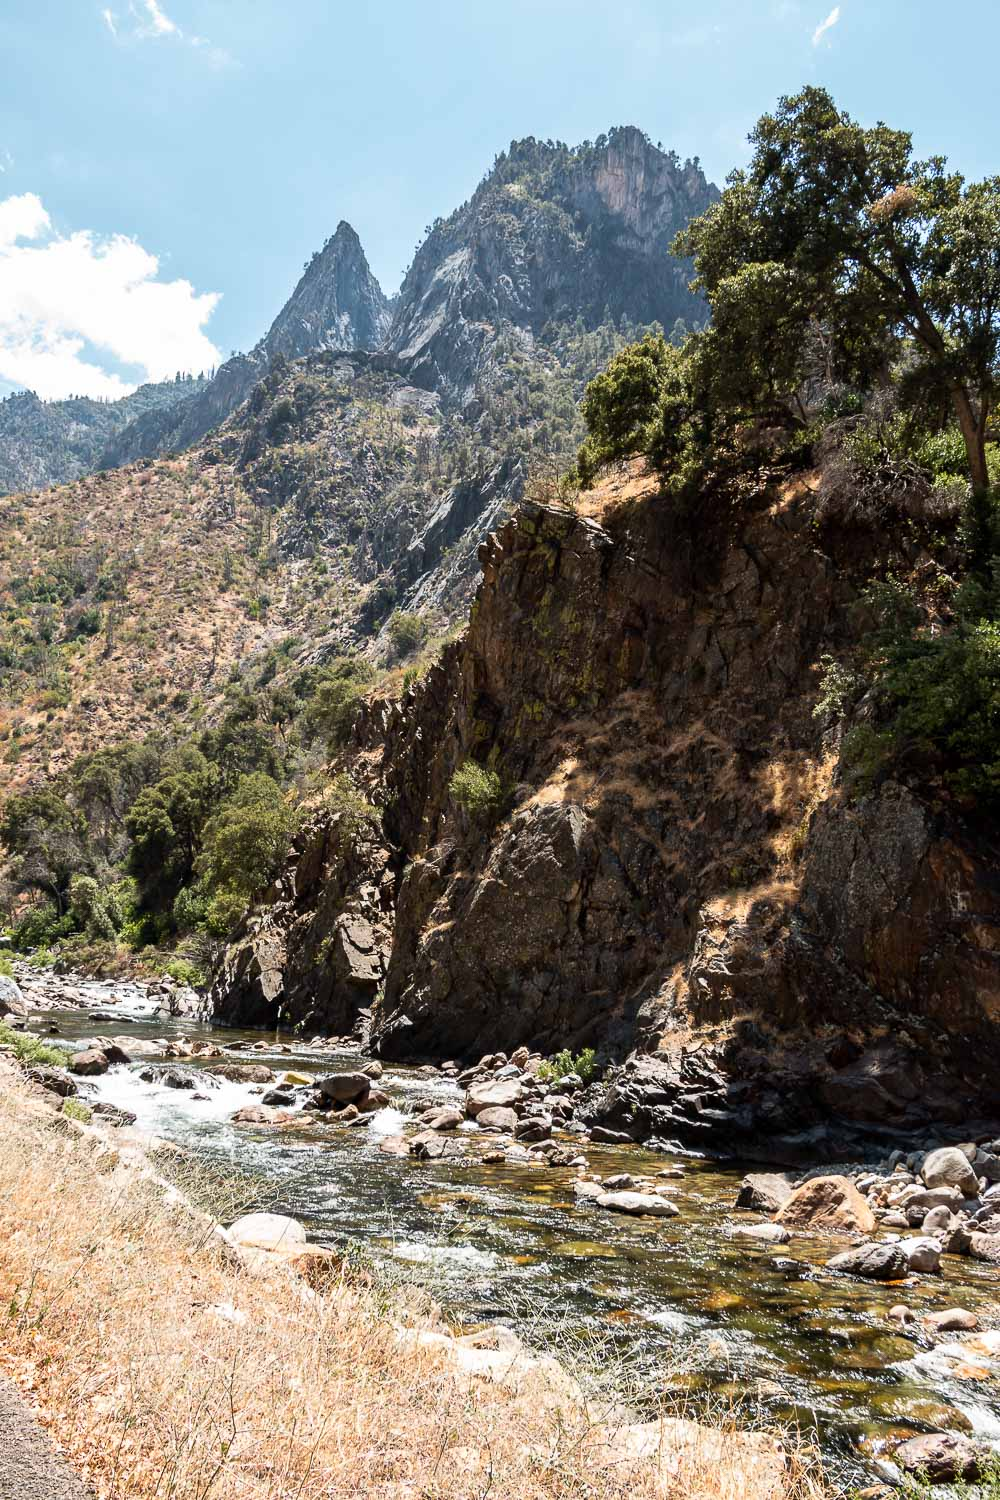 One Day in Kings Canyon National Park - Roads and Destinations. roadsanddestinations.com.